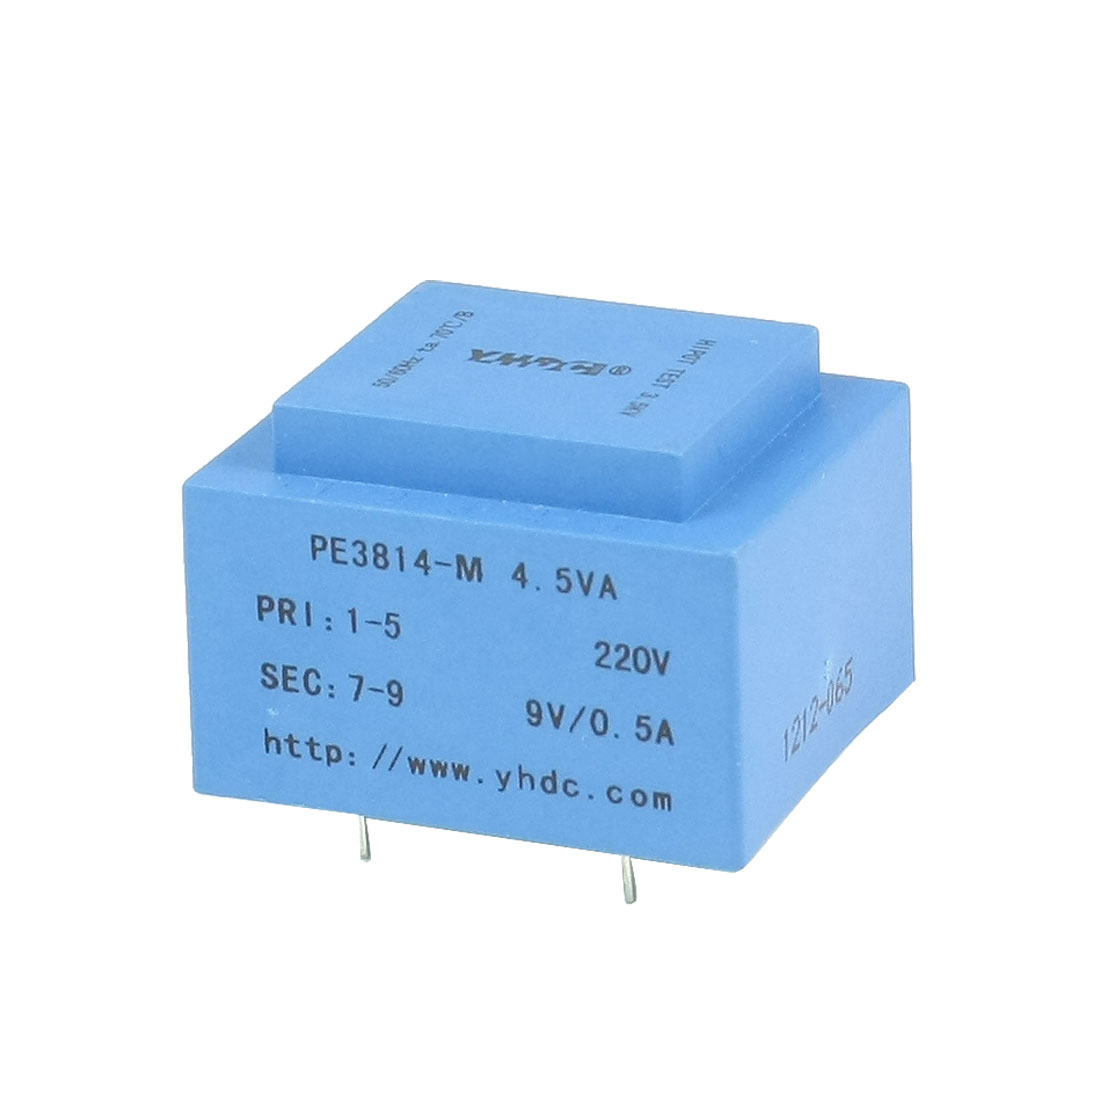 PE3814-M 4.5VA 50/60 Hz 9V Output PCB Mounting Encapsulated Transformer